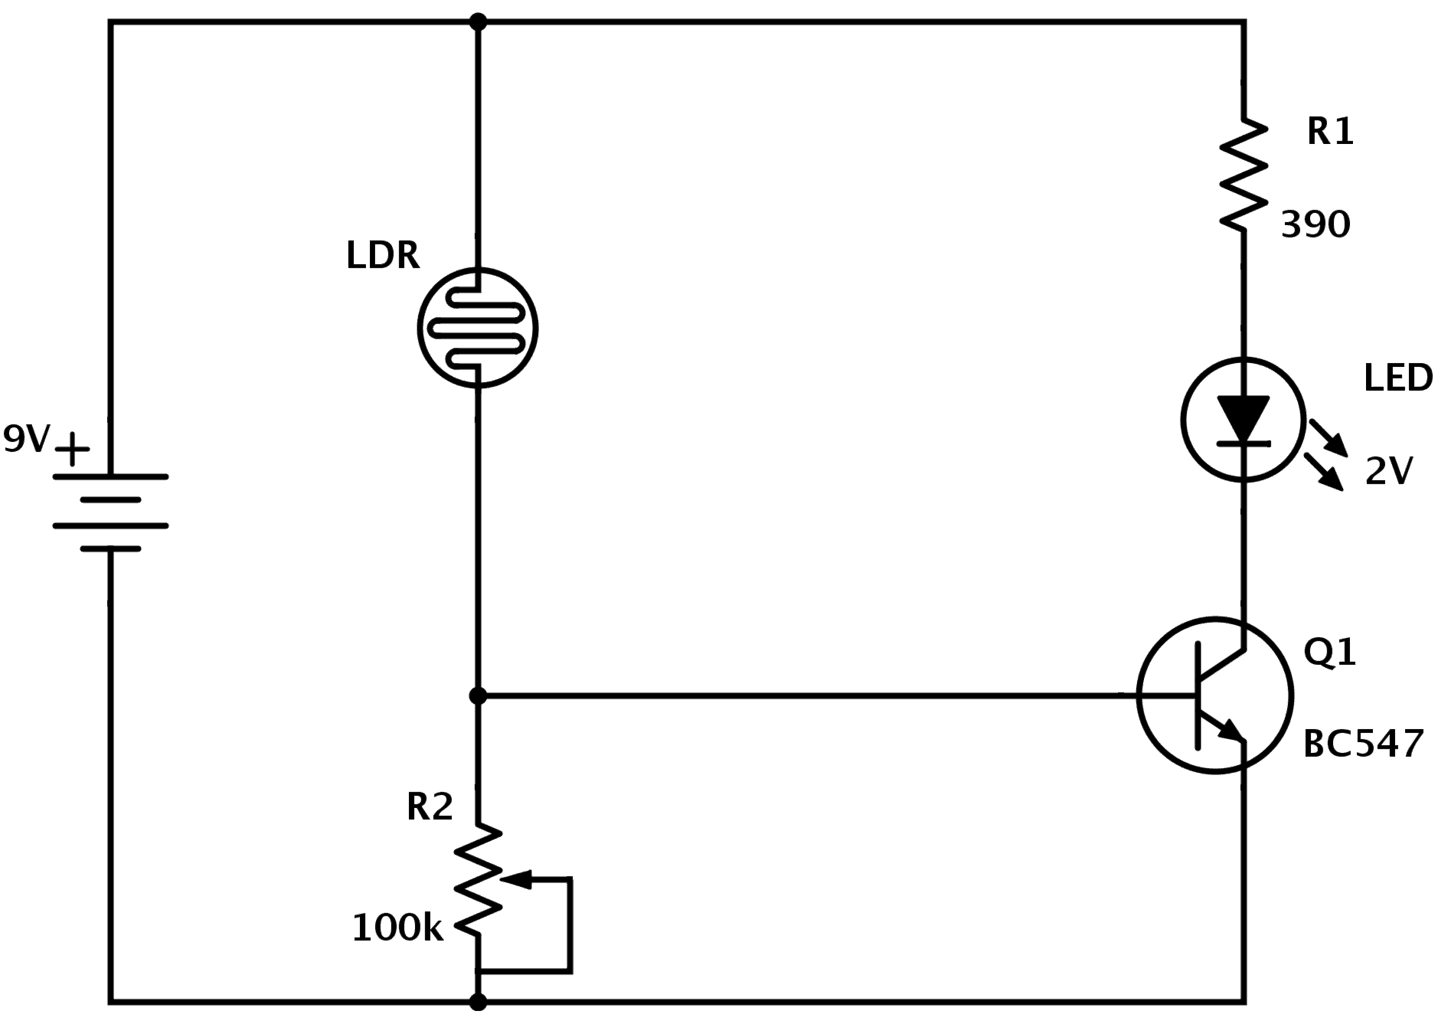 Ldr Circuit Diagram Build Electronic Circuits His Usb Diy Liion Battery Charger In The Project Log Forum